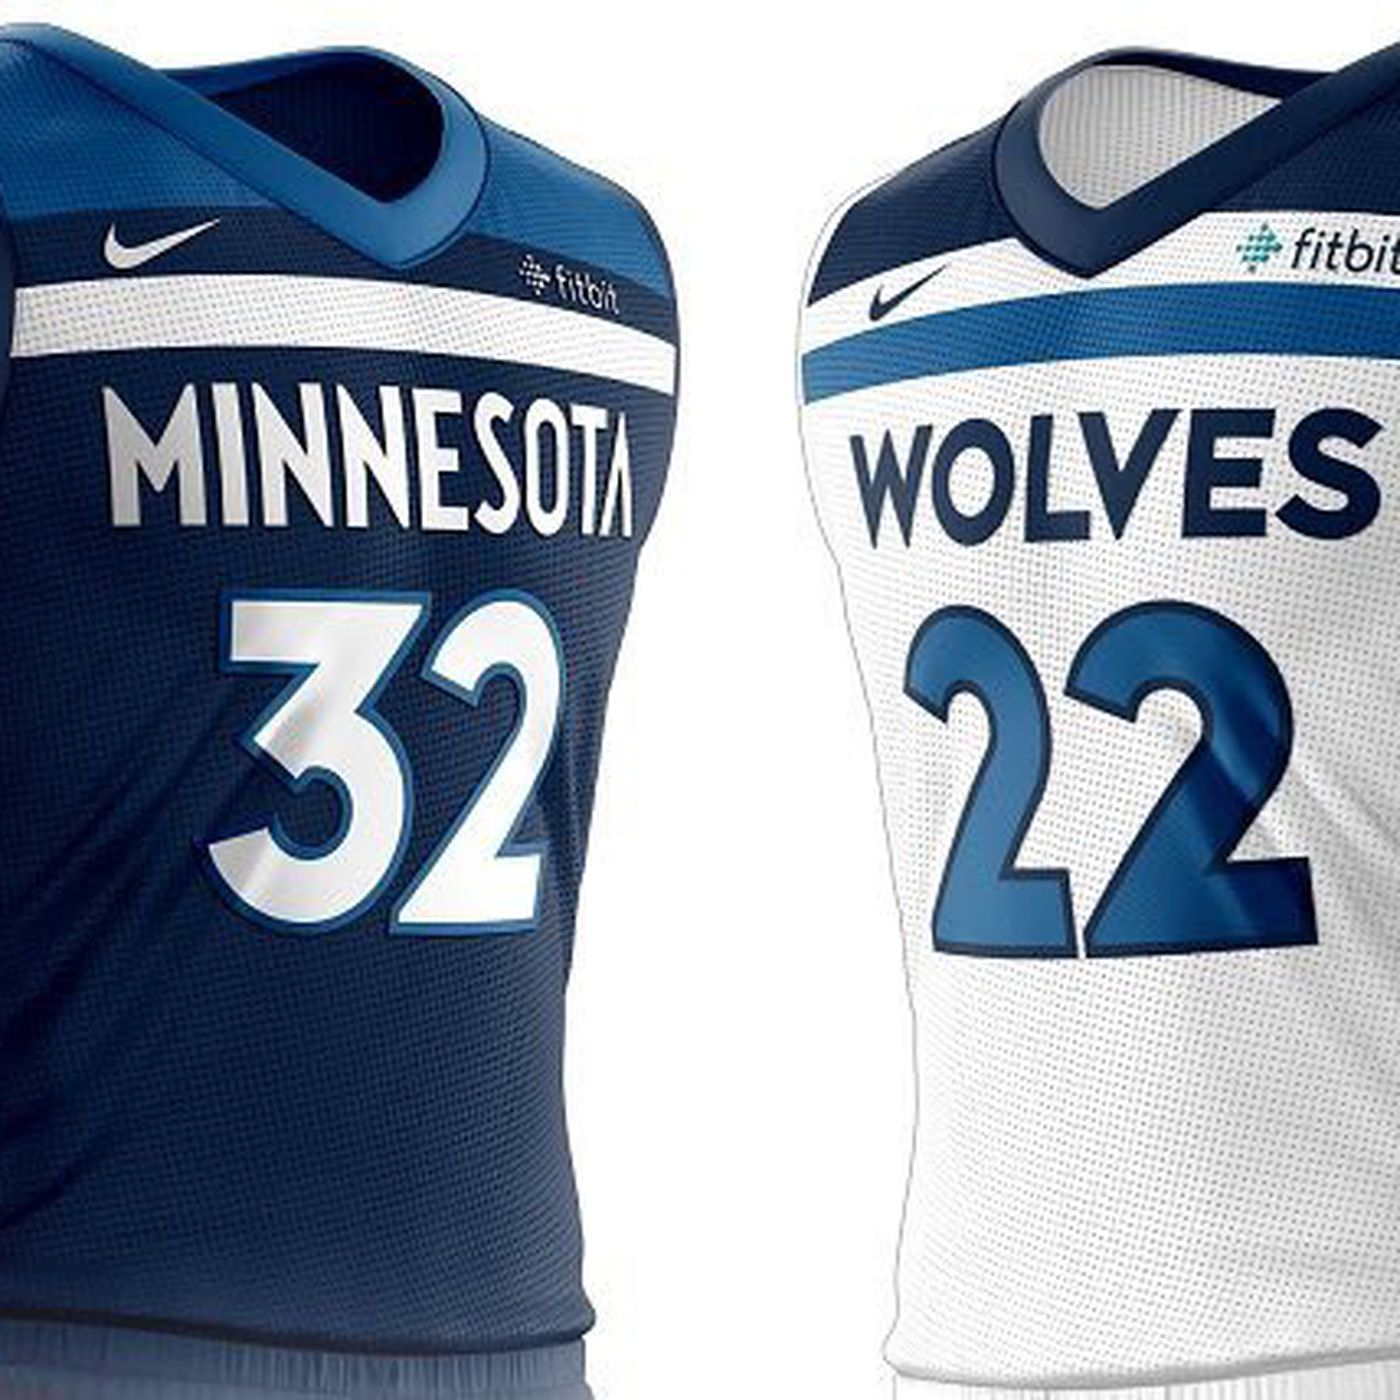 ad2c46c21 Timberwolves fans are either loving or hating their new jerseys -  SBNation.com